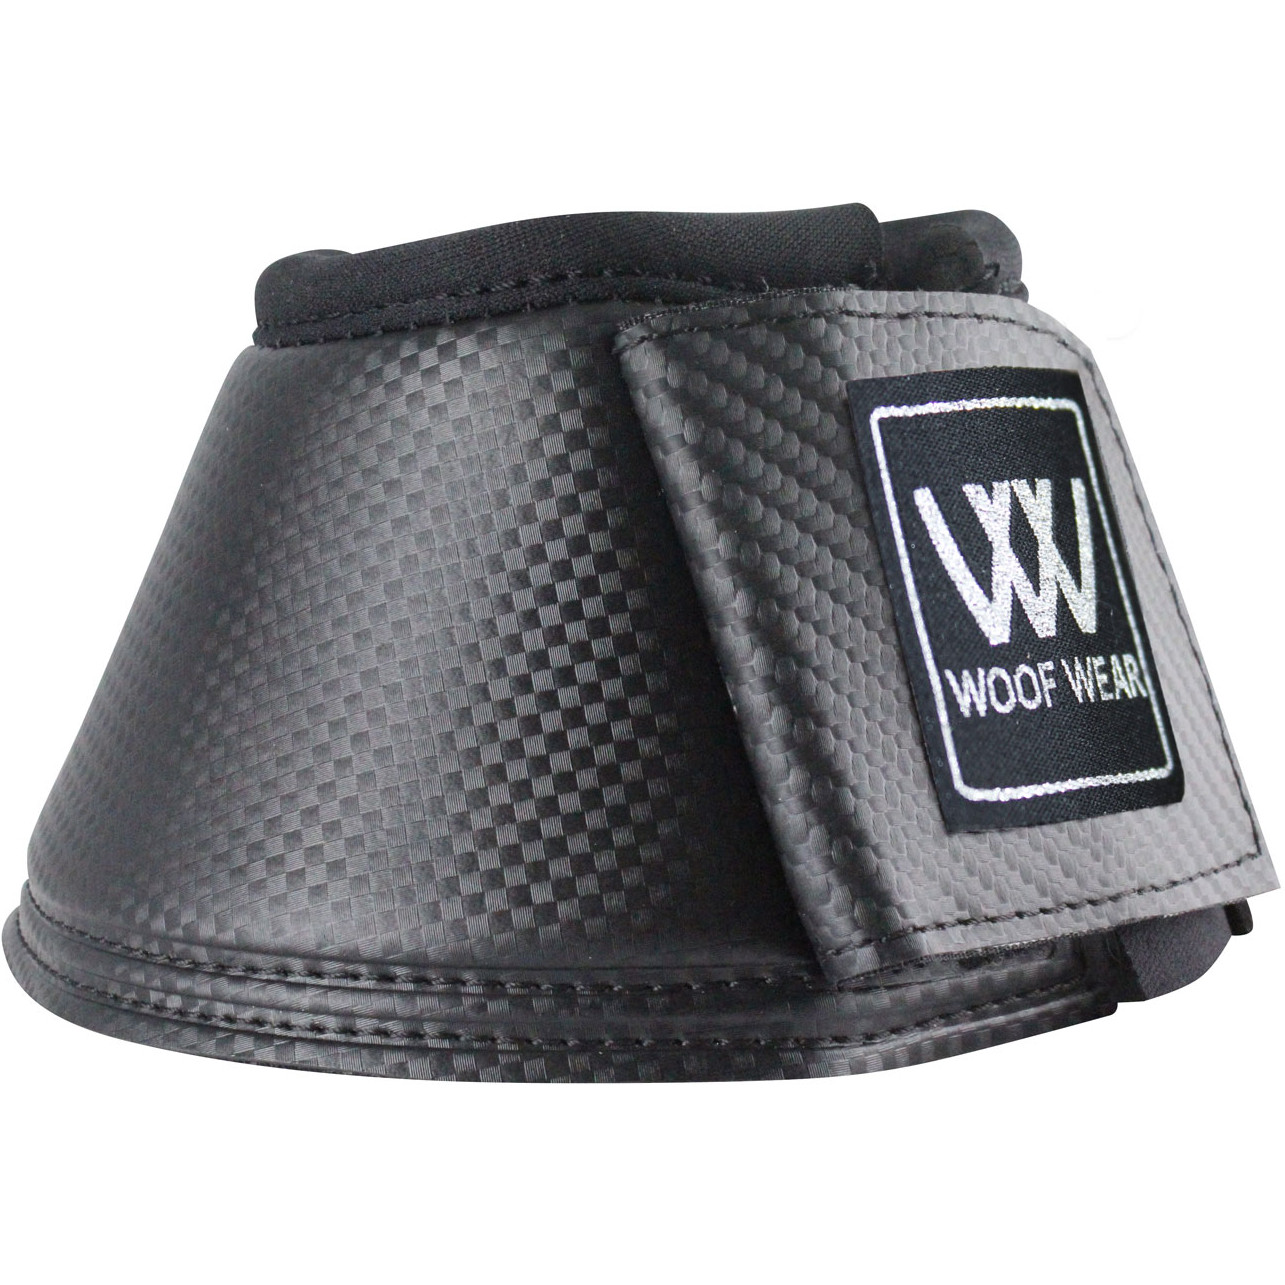 Woof Wear Club Unisex Horse Boot Over Reach Boots Black All Sizes